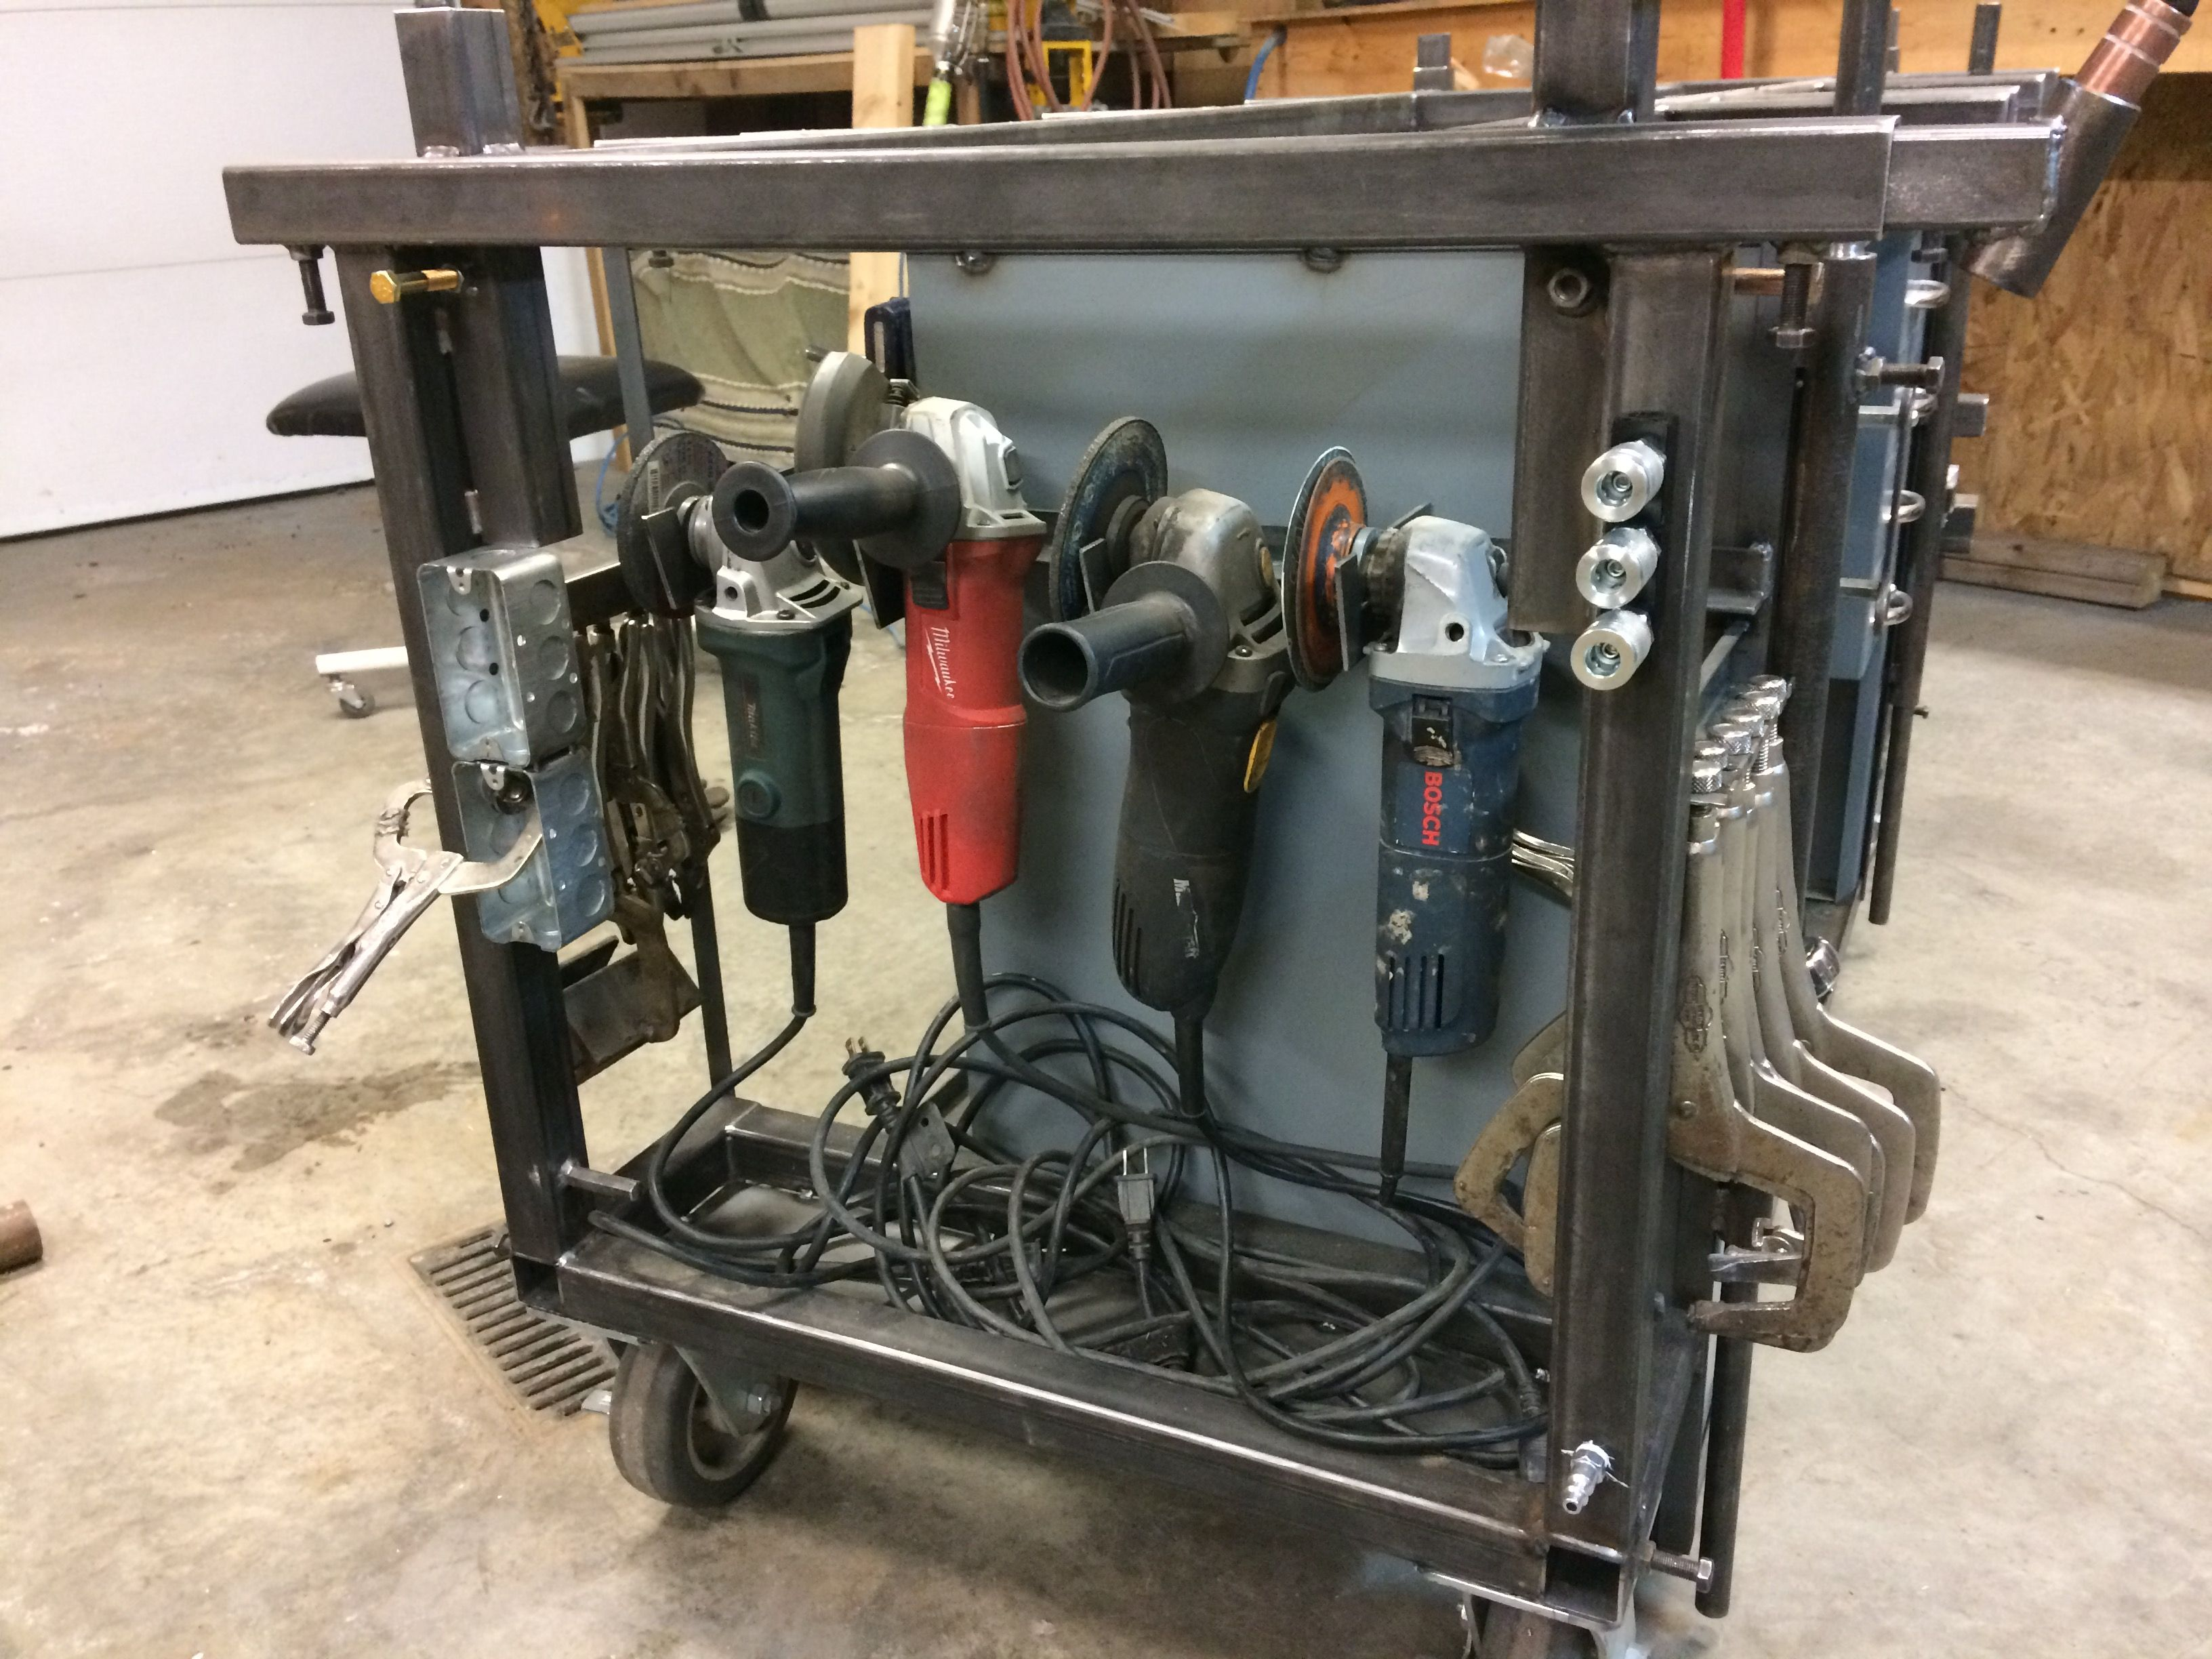 Pin By Cody Lekberg On Welding In 2019 Welding Table